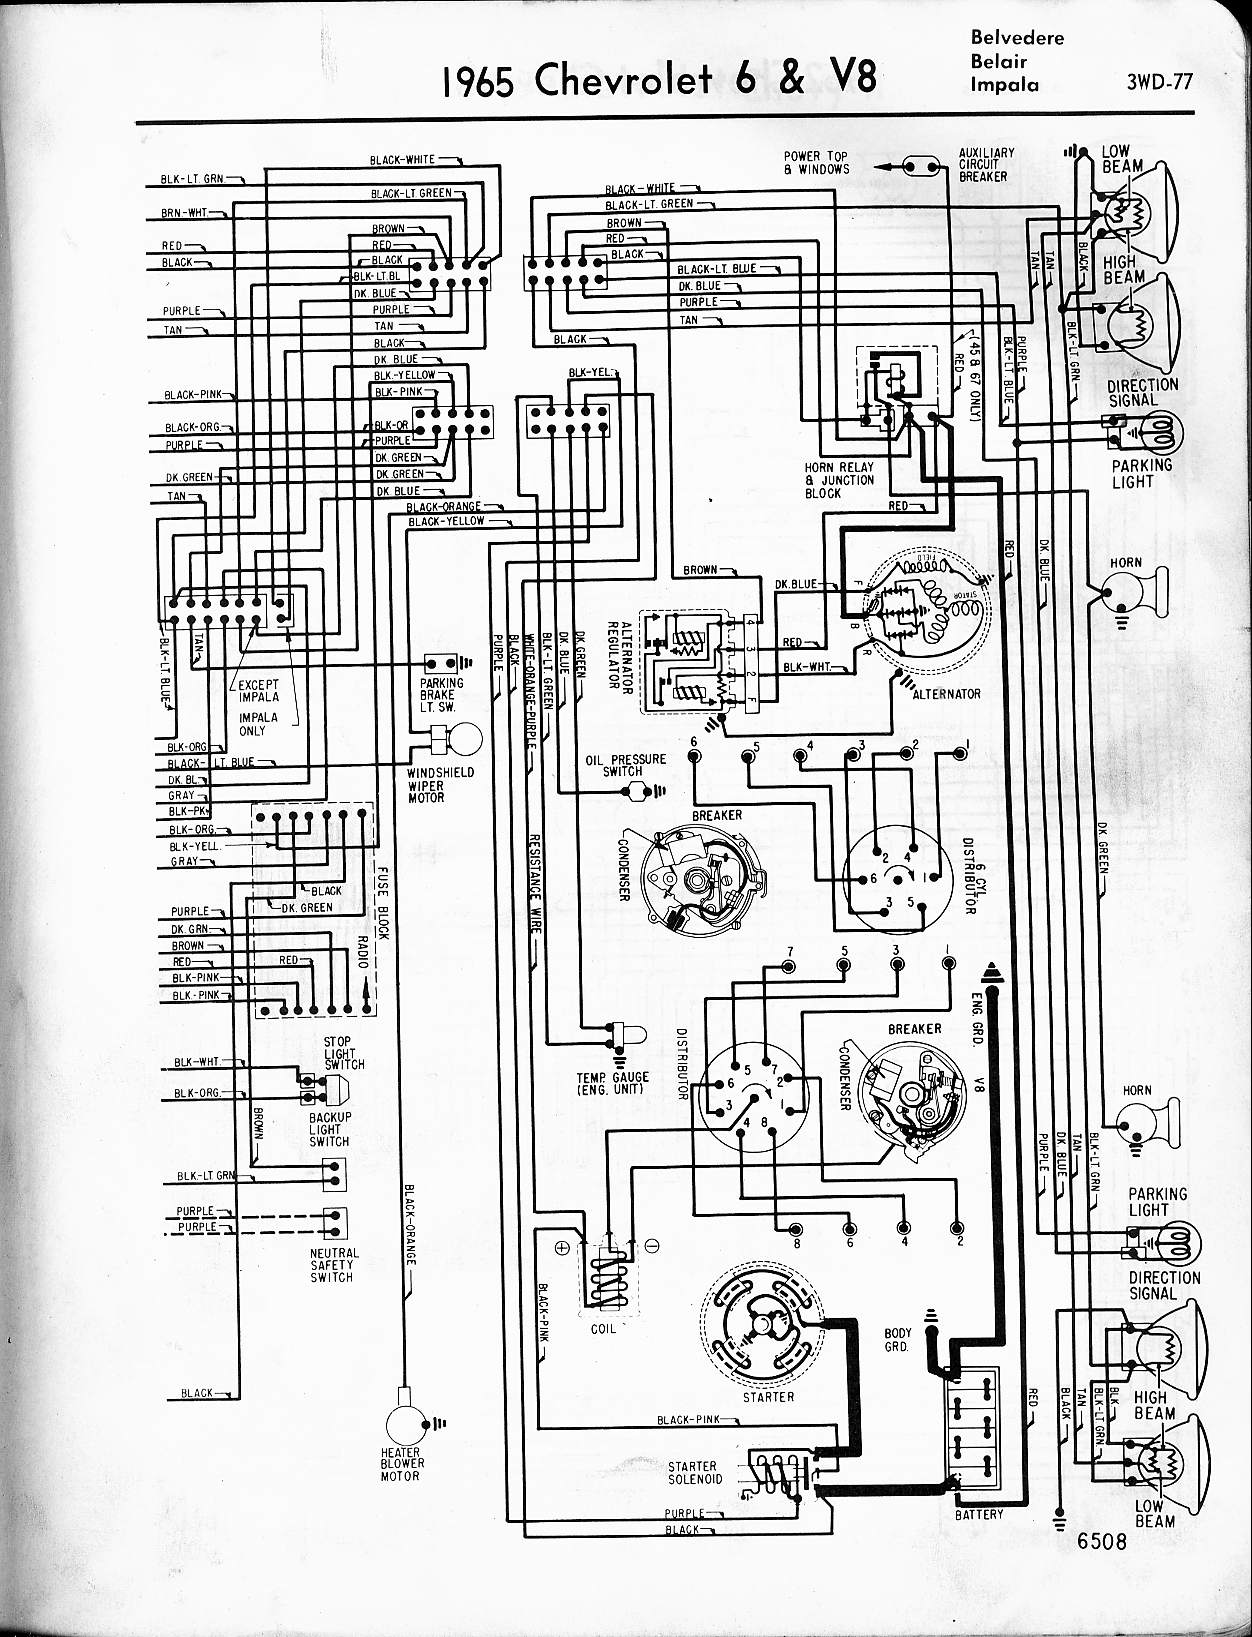 1957 bel air wiring diagram schematic 57 - 65 chevy wiring diagrams 65 bel air wire diagram #2